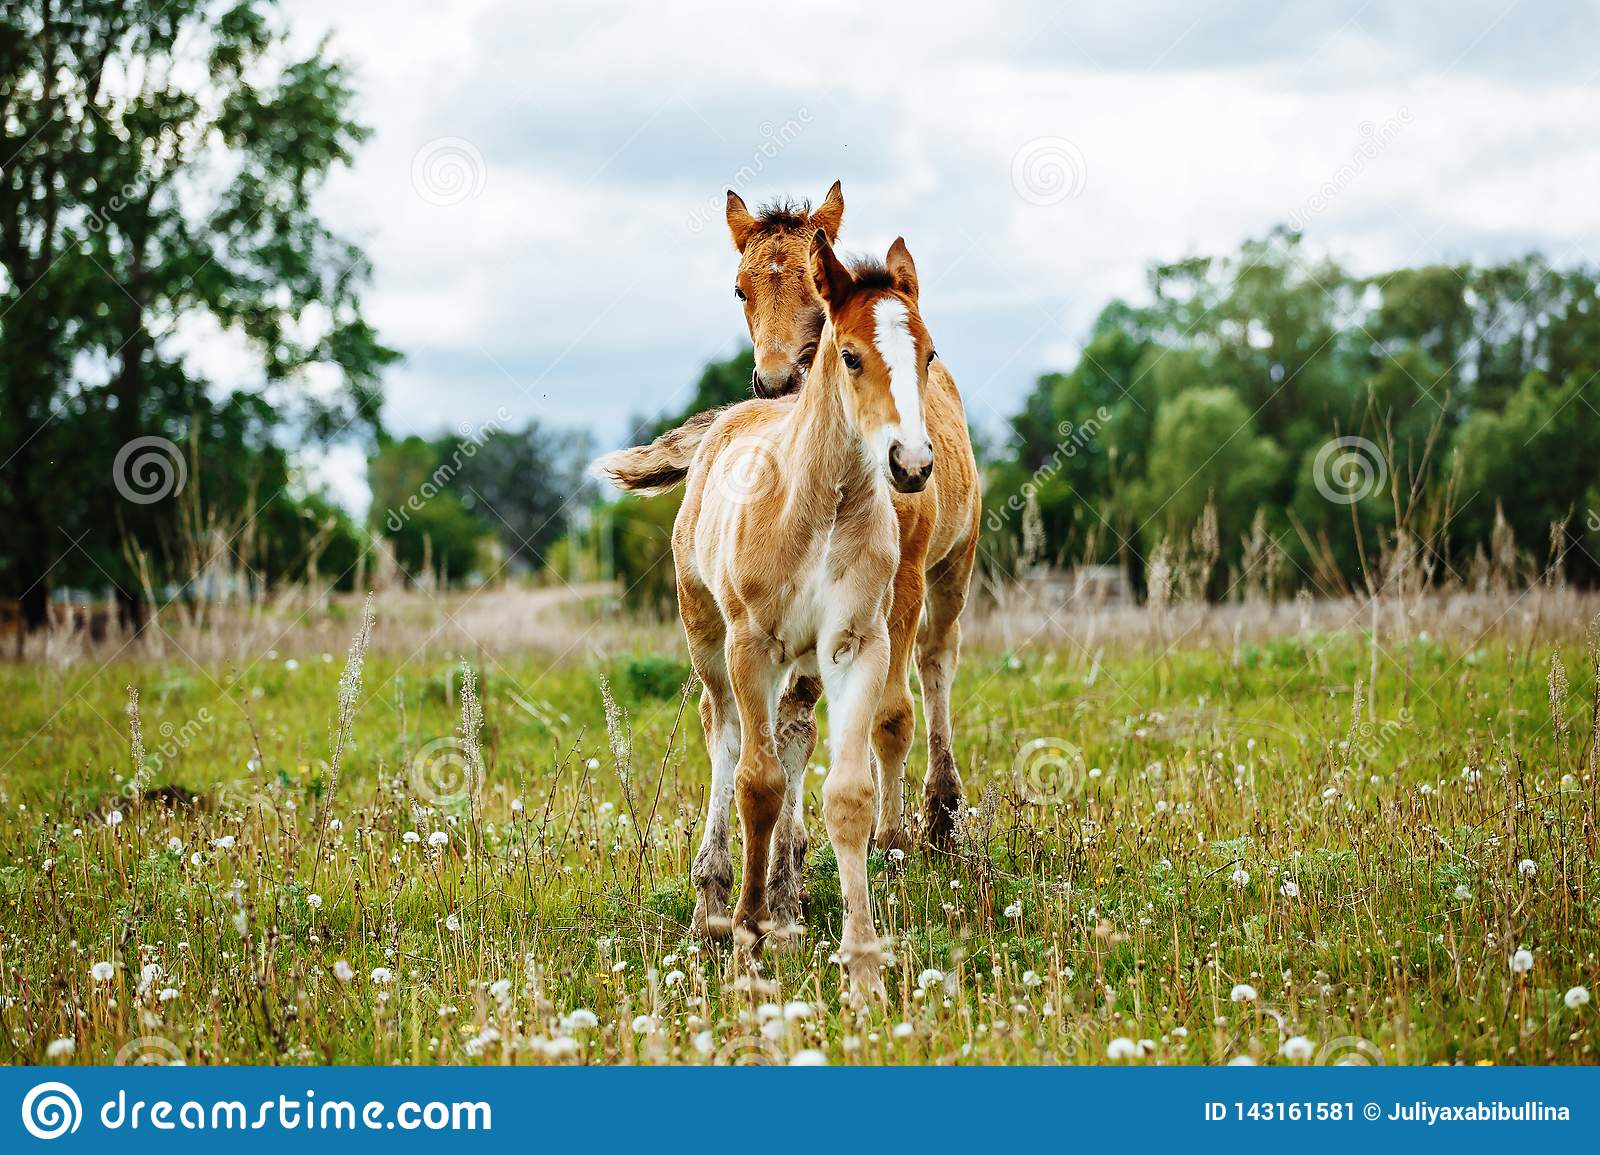 Beautiful Horse Is Eating Grass In The Field Stock Image Image Of Field Little 143161581